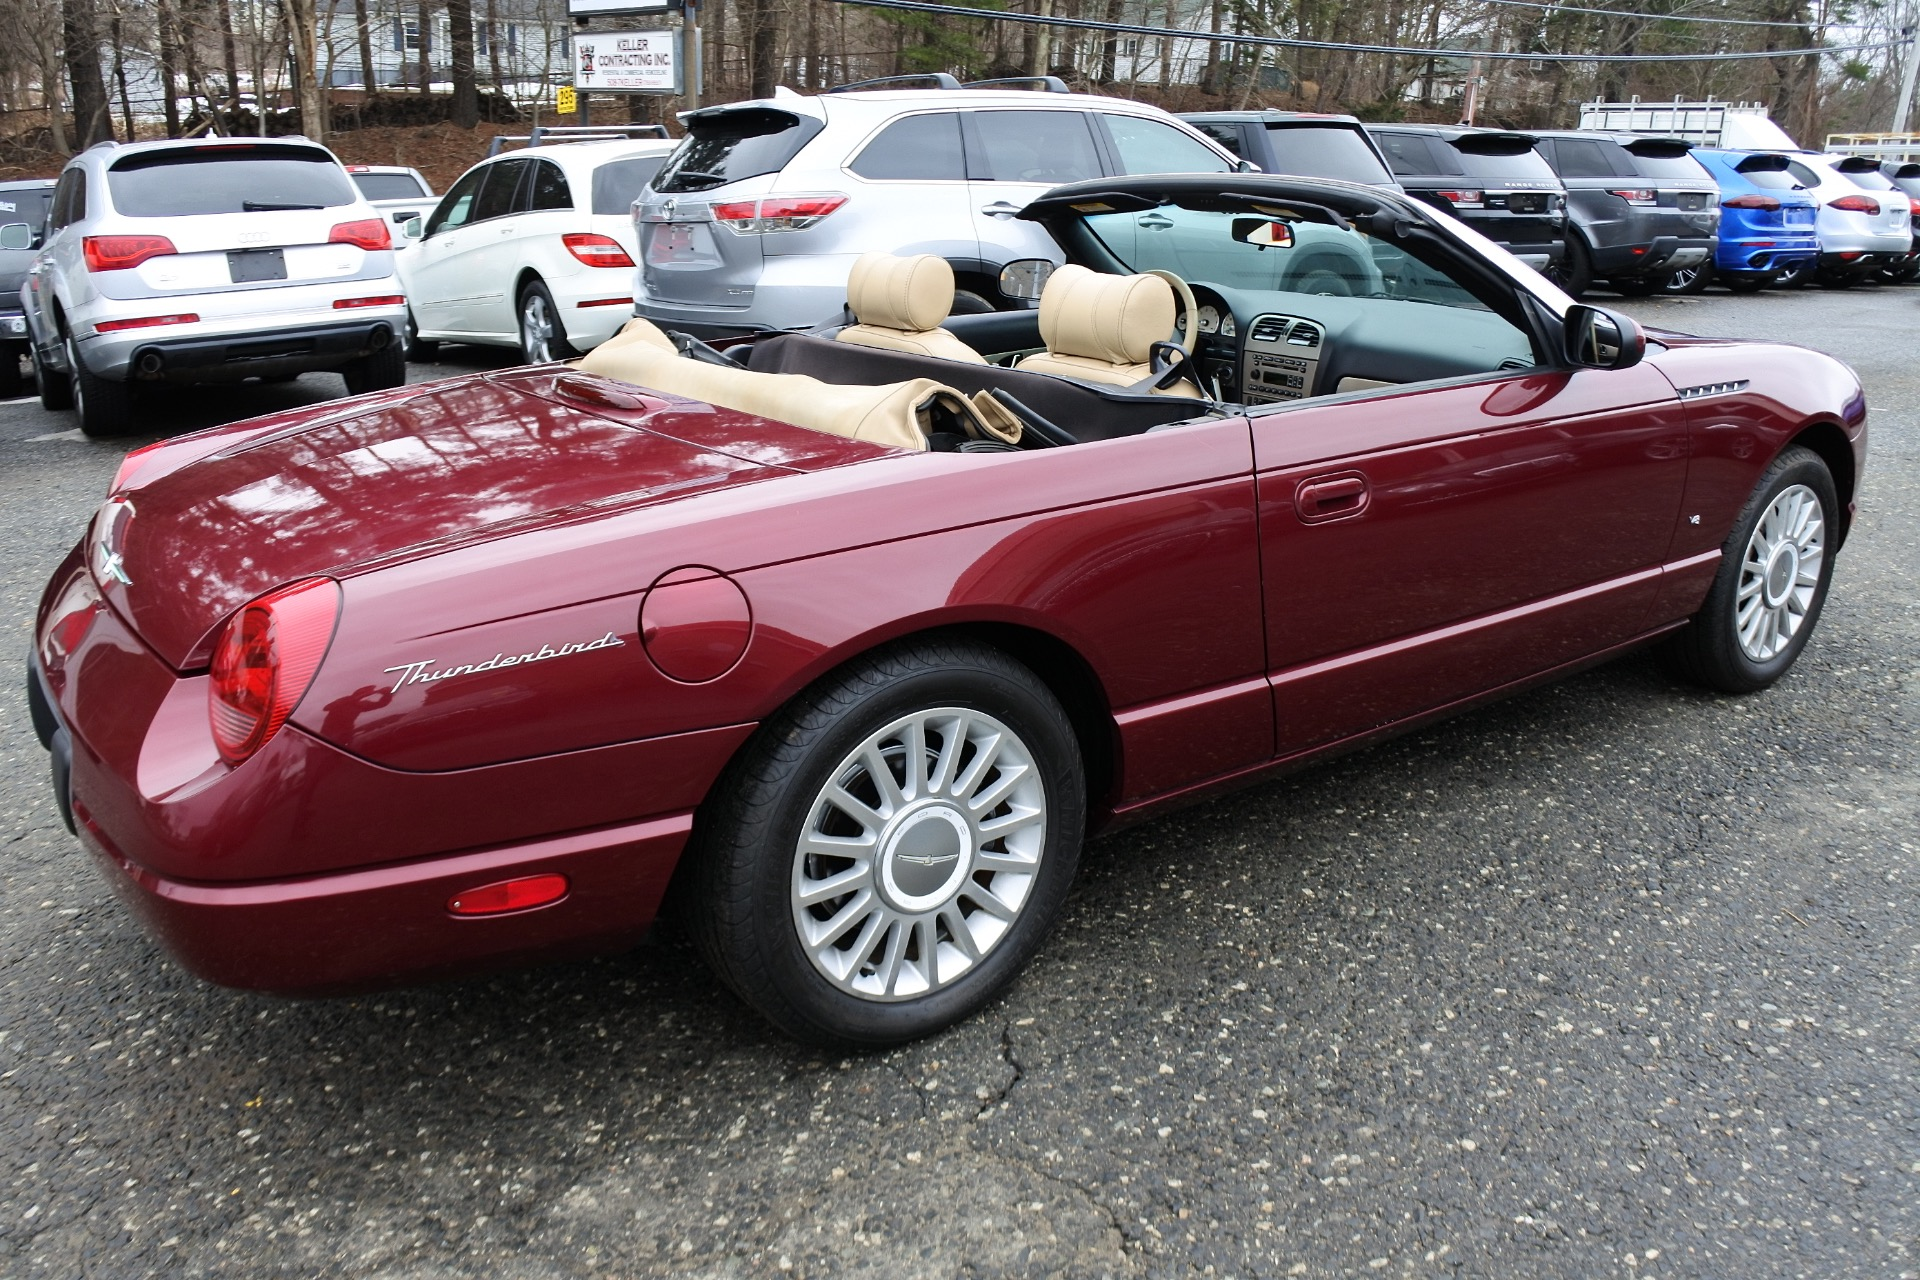 Used 2004 Ford Thunderbird 2dr Convertible Premium Used 2004 Ford Thunderbird 2dr Convertible Premium for sale  at Metro West Motorcars LLC in Shrewsbury MA 19